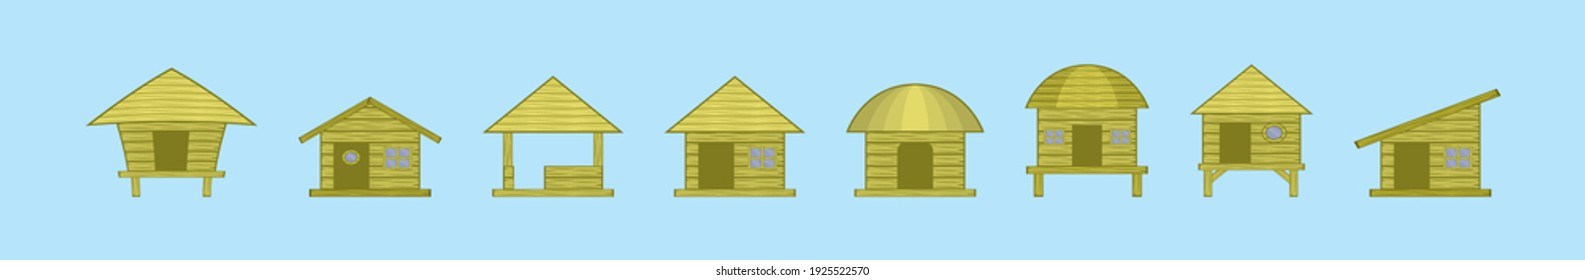 set of shack cartoon icon design template with various models. modern vector illustration isolated on blue background